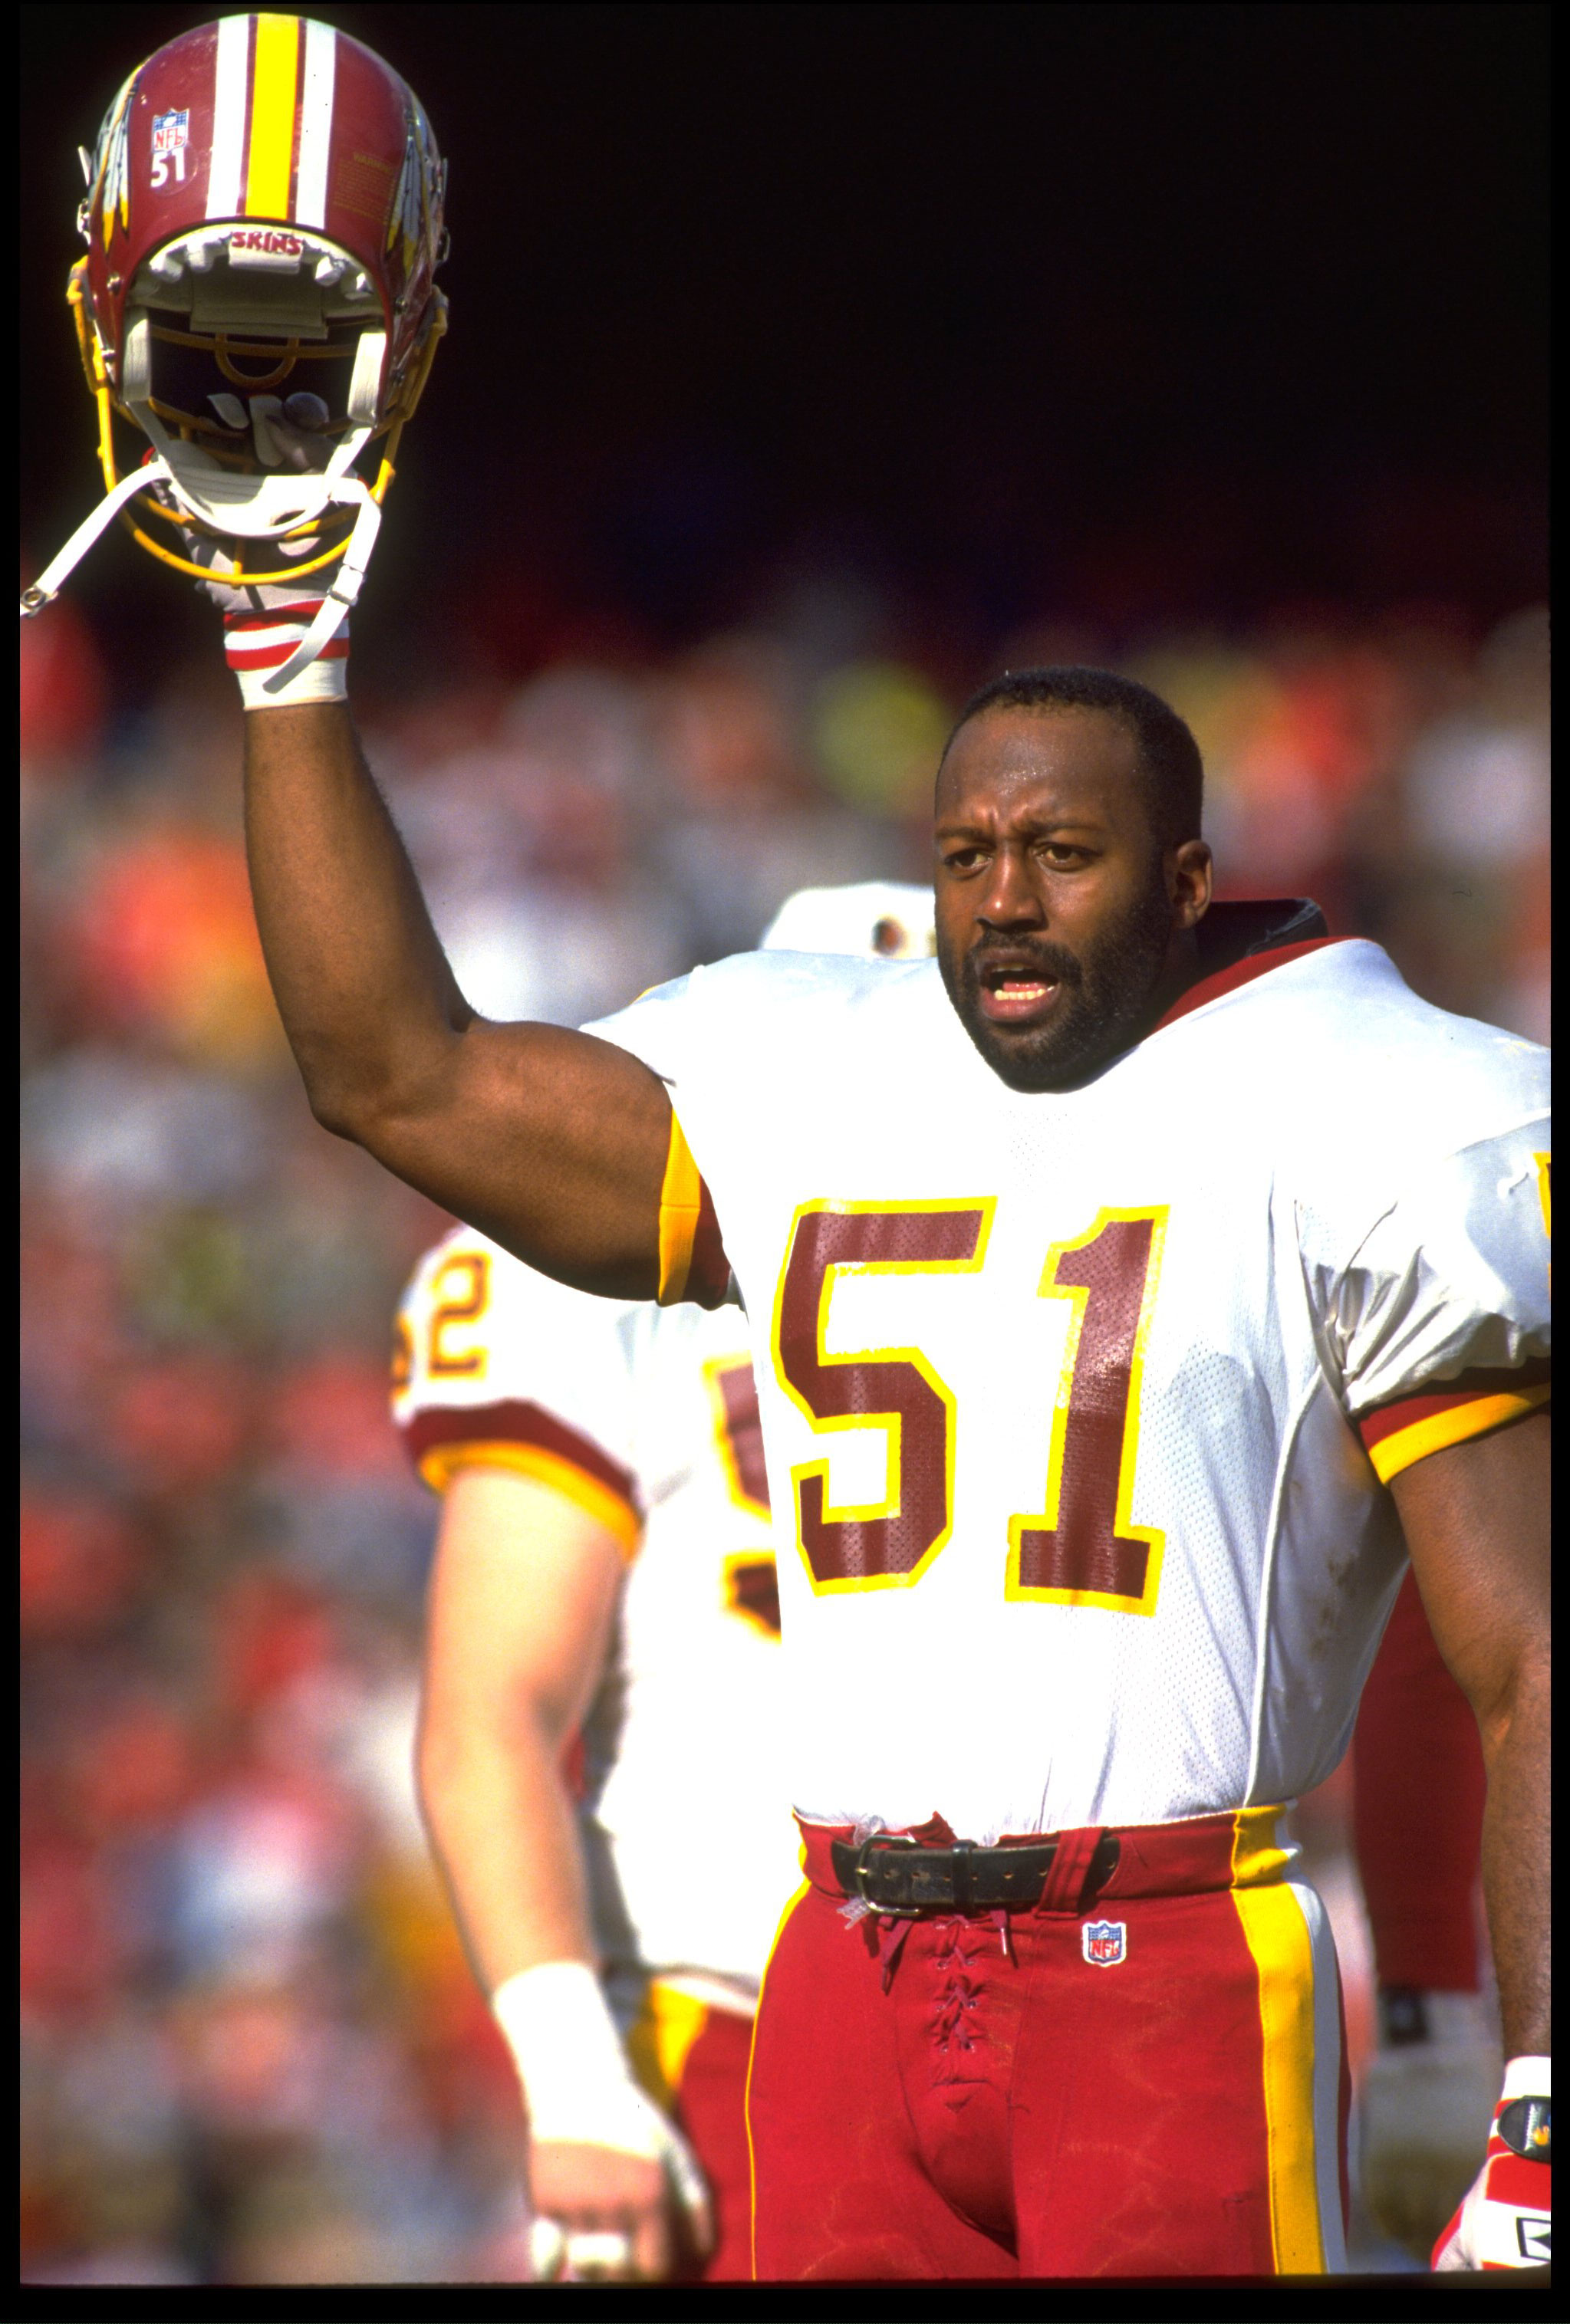 9 JAN 1993:  WASHINGTON REDSKINS LINEBACKER MONTE COLEMAN CHEERS ON TEAM DURING NFC DIVISION PLAYOFF 20-13 LOSS TO THE SAN FRANCISCO 49ERS AT CANDLESTICK PARK IN SAN FRANCISCO, CALIFORNIA.